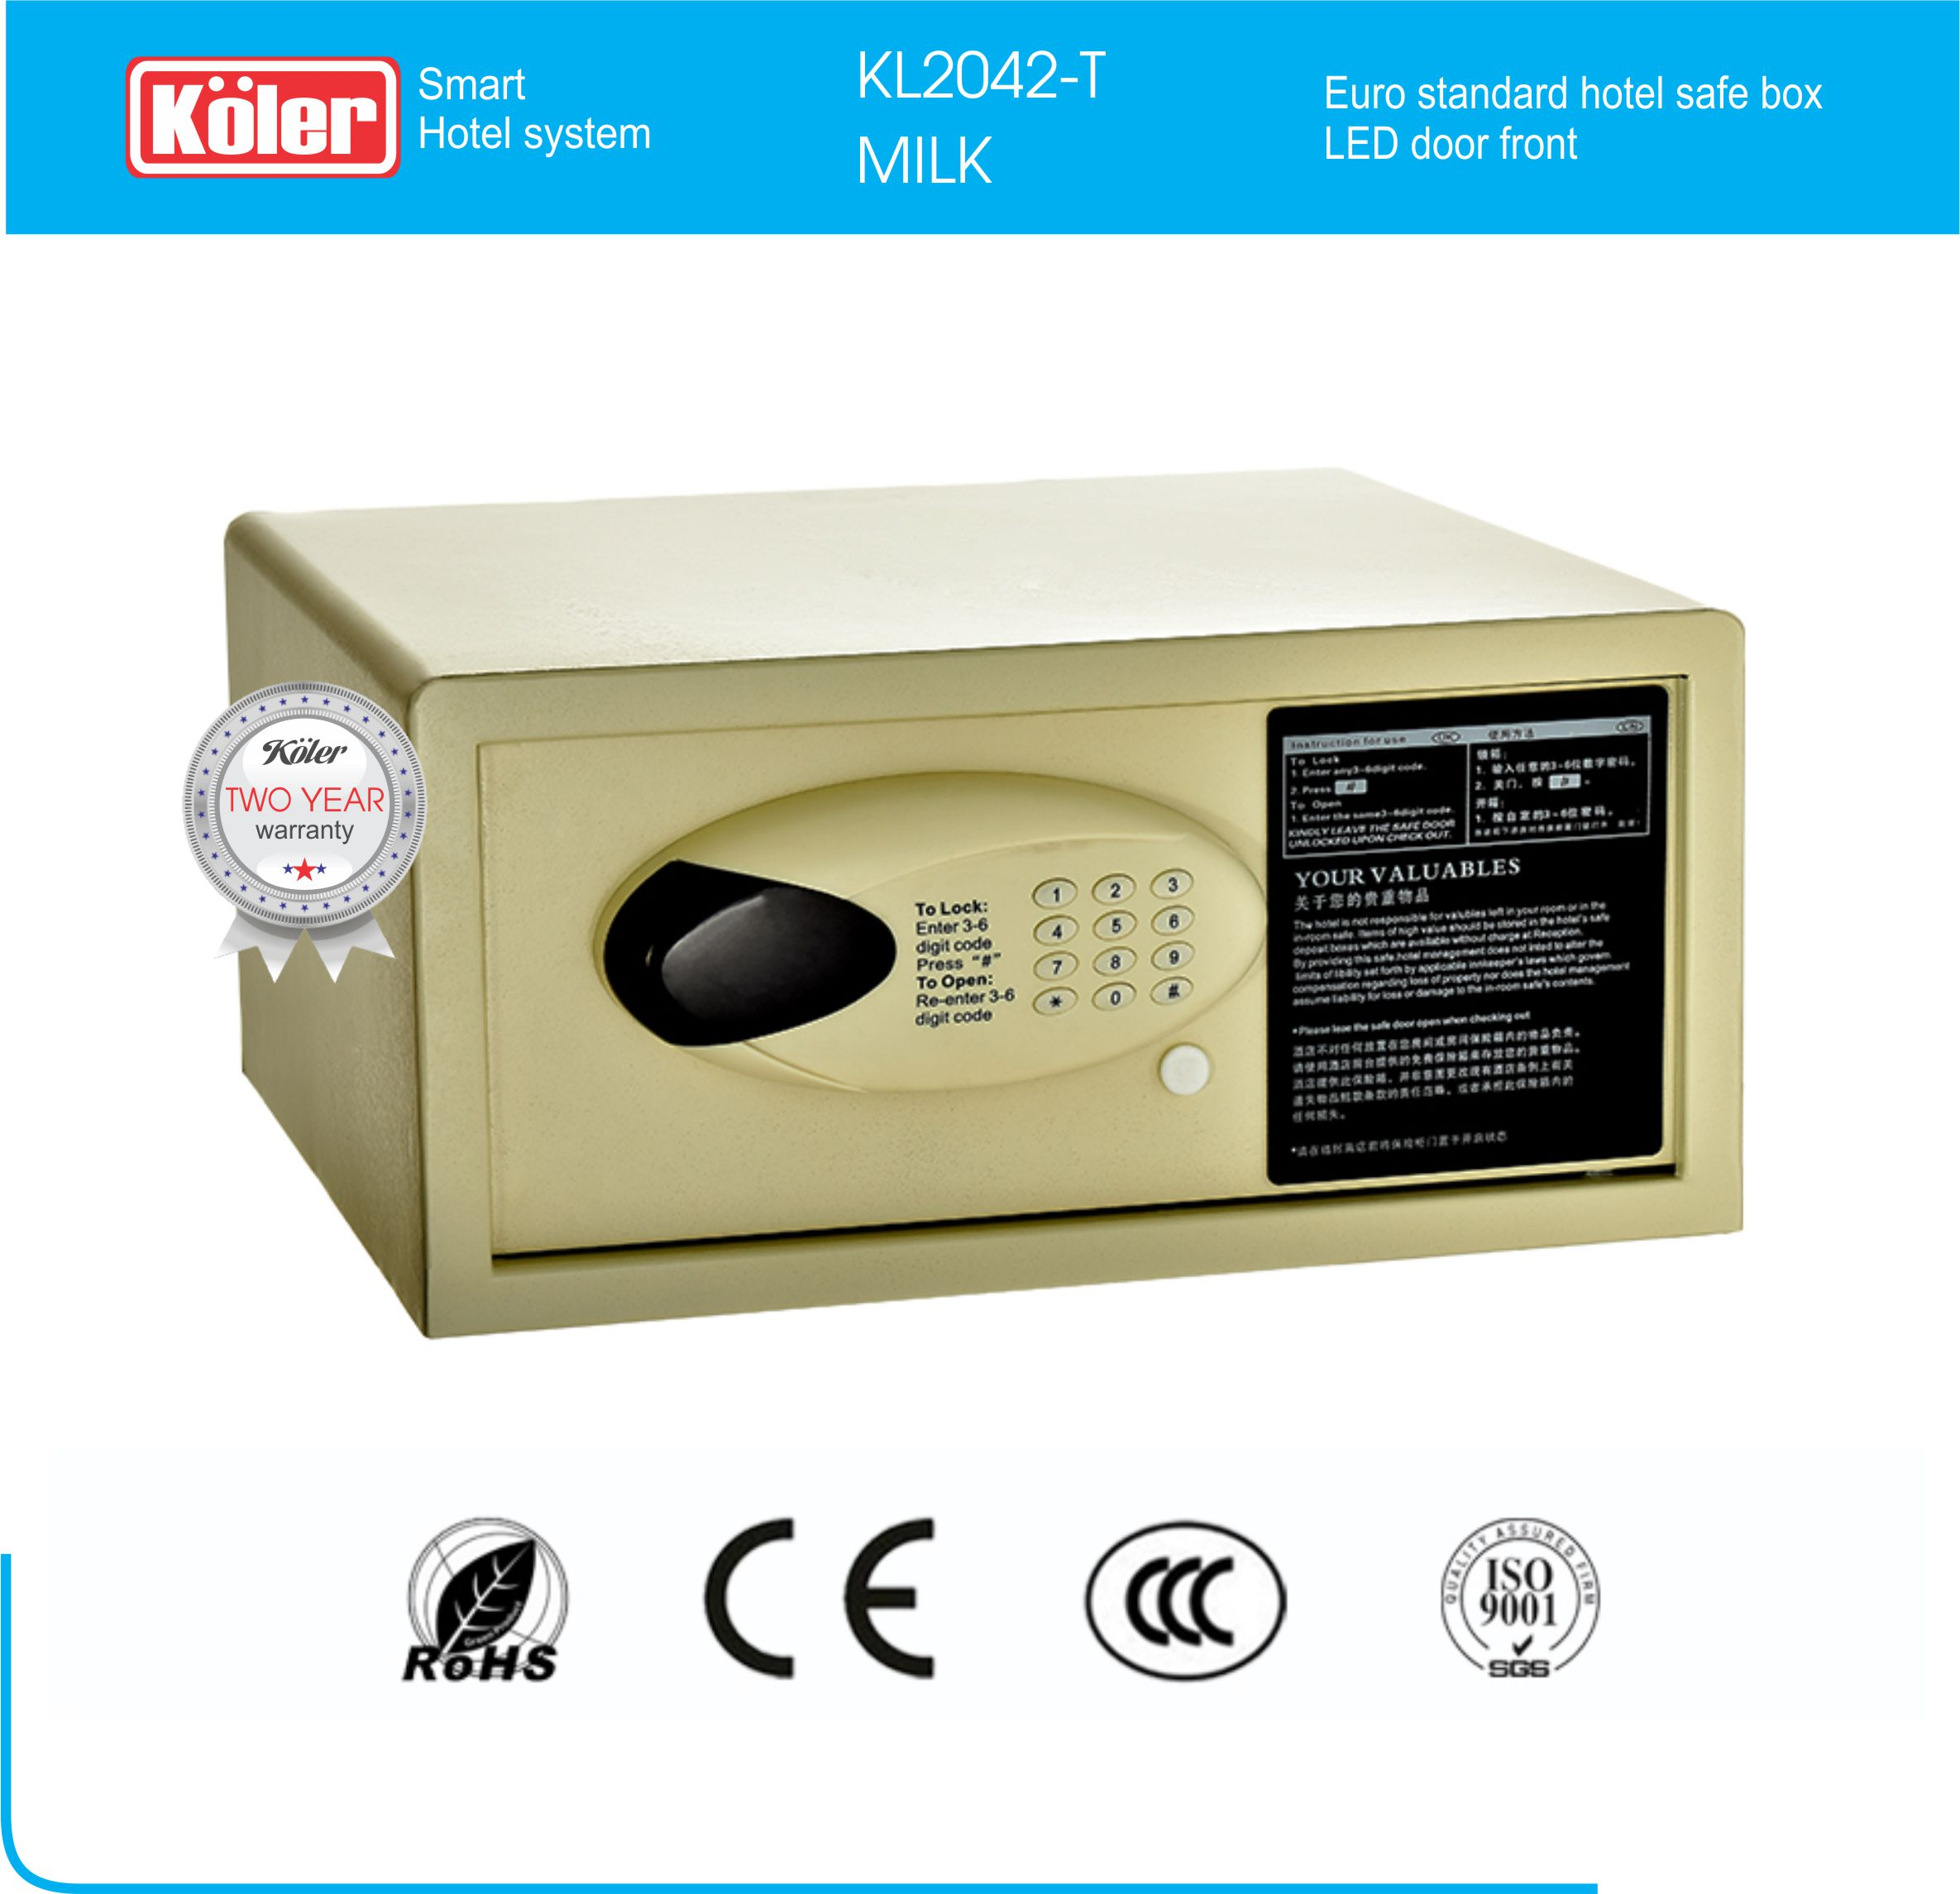 Safe box KL2042-T Milk